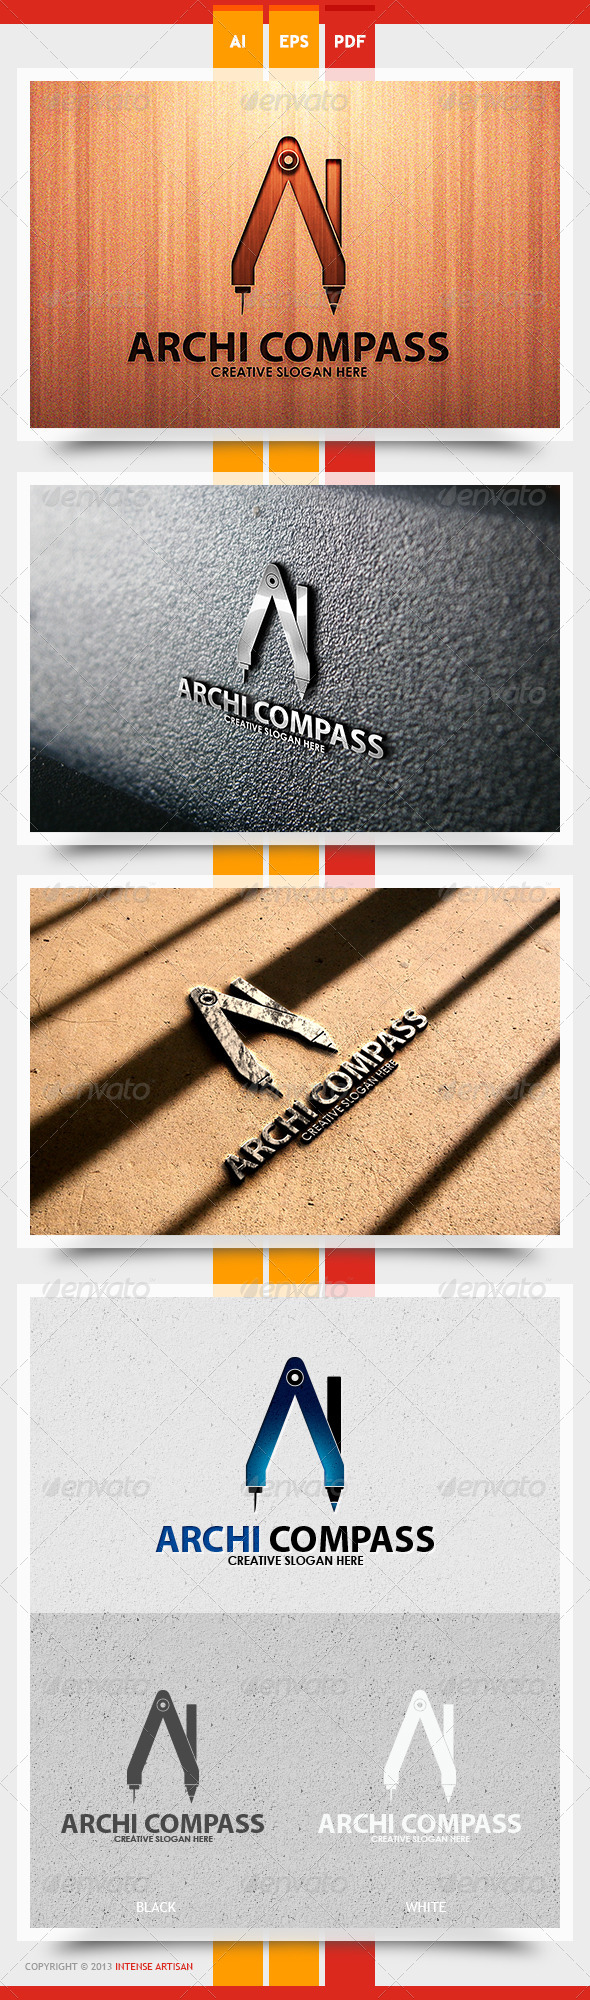 Archi Compass Logo Template